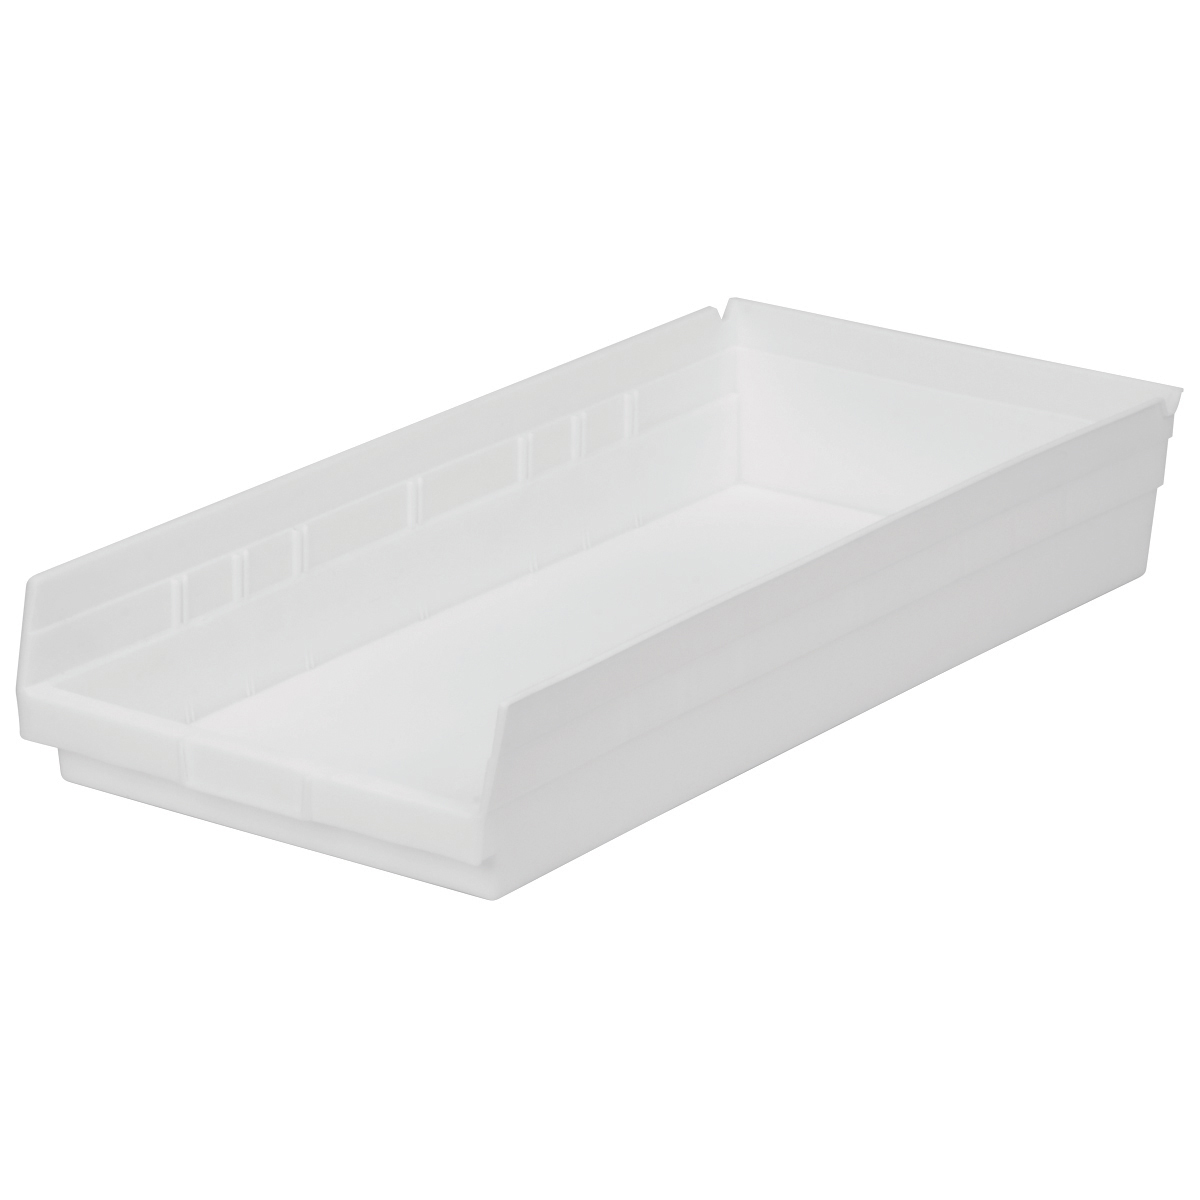 Shelf Bin 23-5/8 x 11-1/8 x 4, White (30174WHITE).  This item sold in carton quantities of 6.